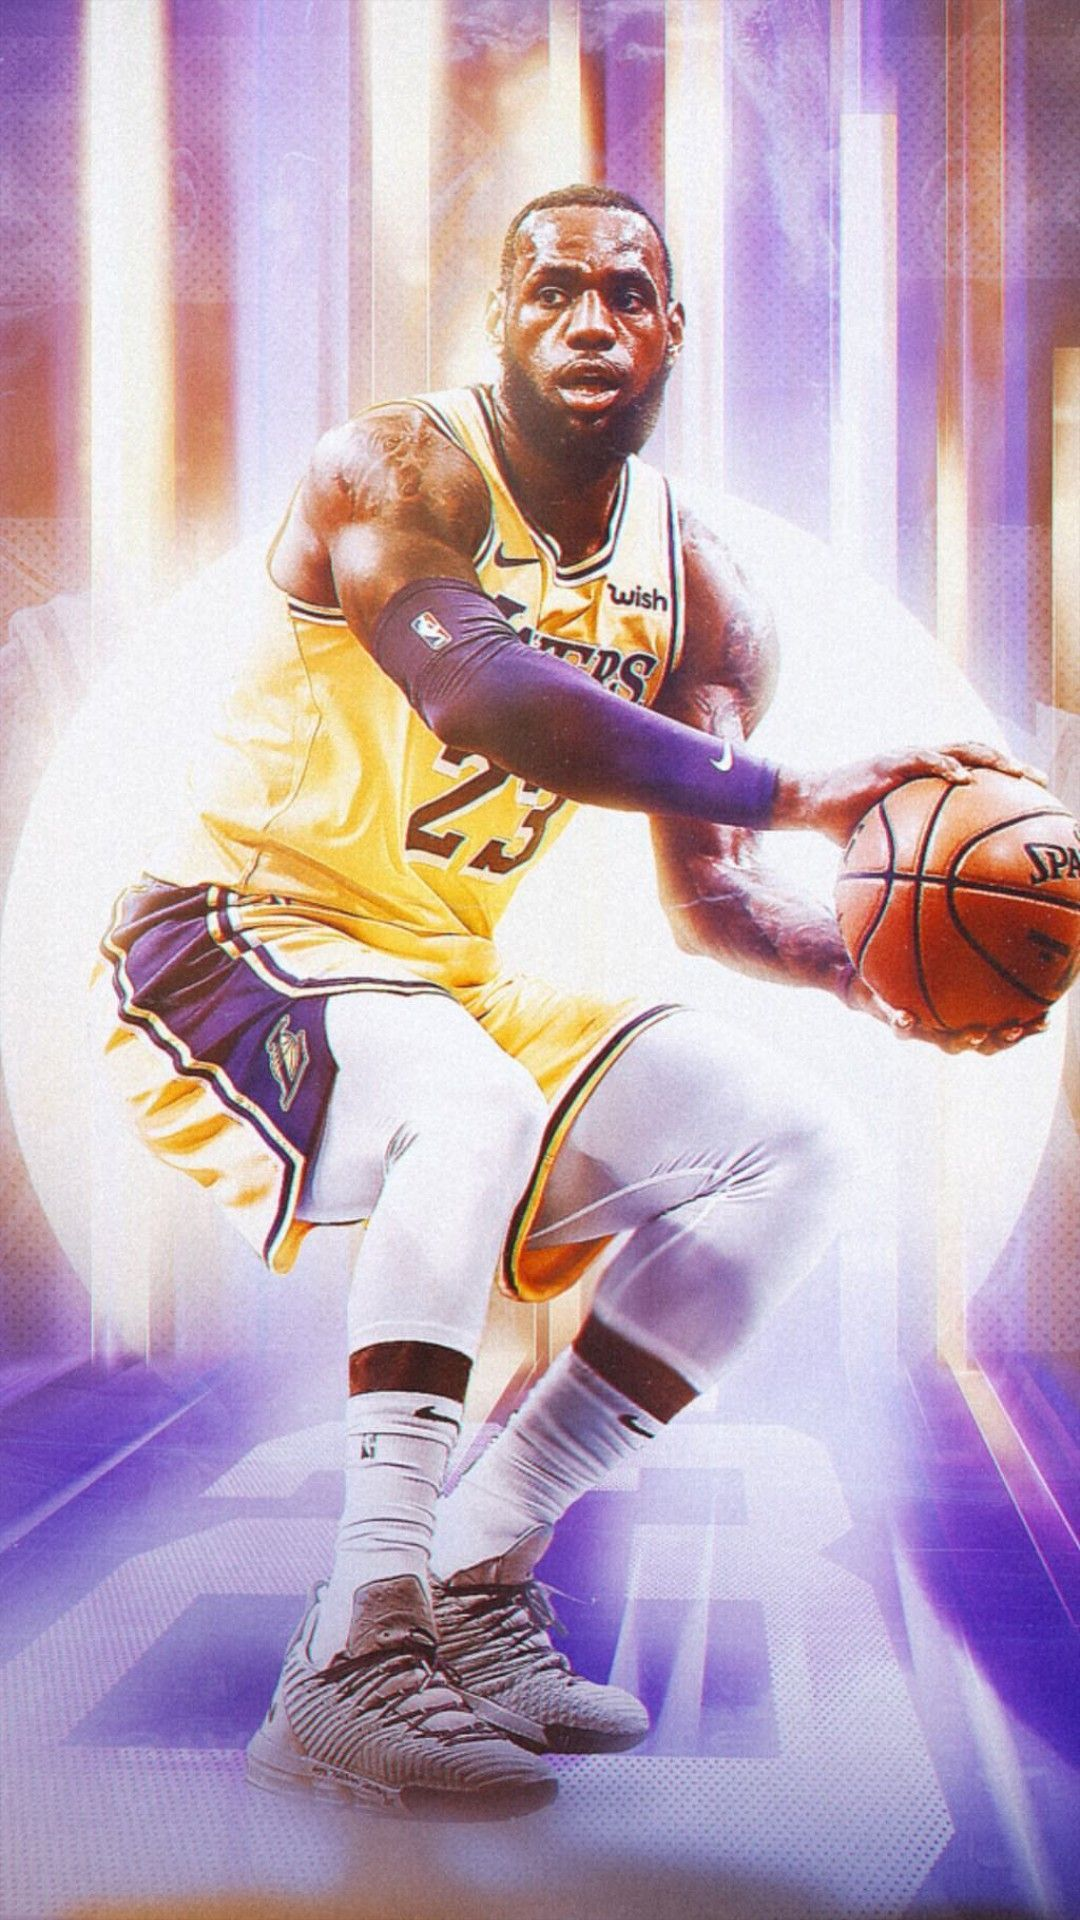 Lakers Anthony Davis Wallpaper Download in 2020 Lebron james 1080x1920